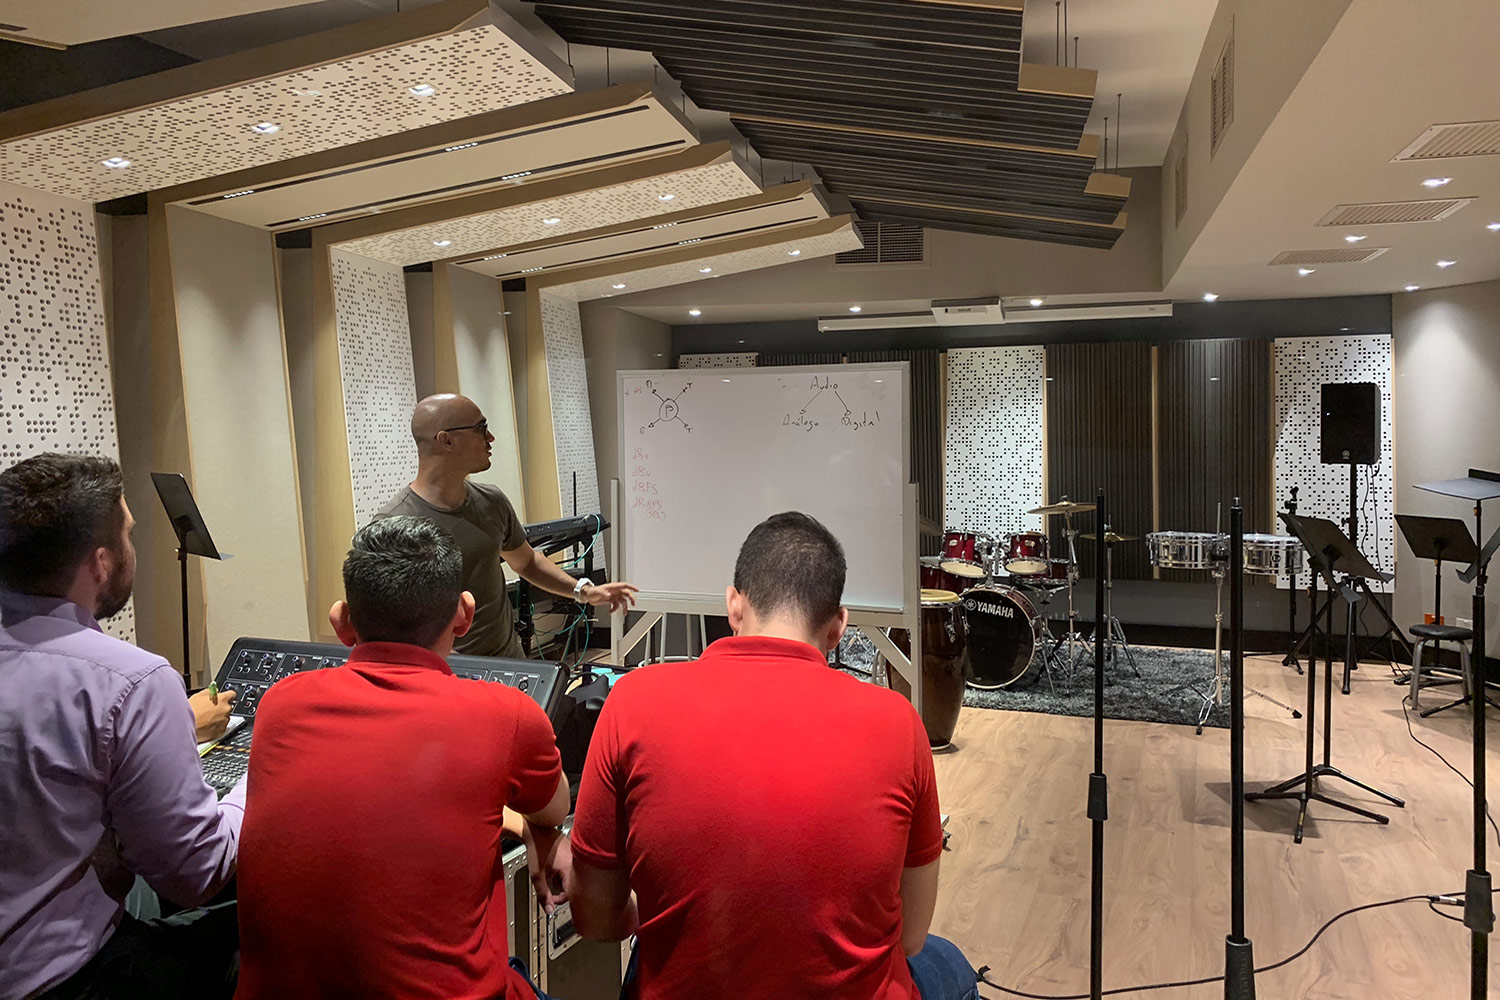 Universidad ICESI in Cali, Colombia commissioned WSDG to design their new music performance, composition and production building with world-class recording studios. Ensemble with students.